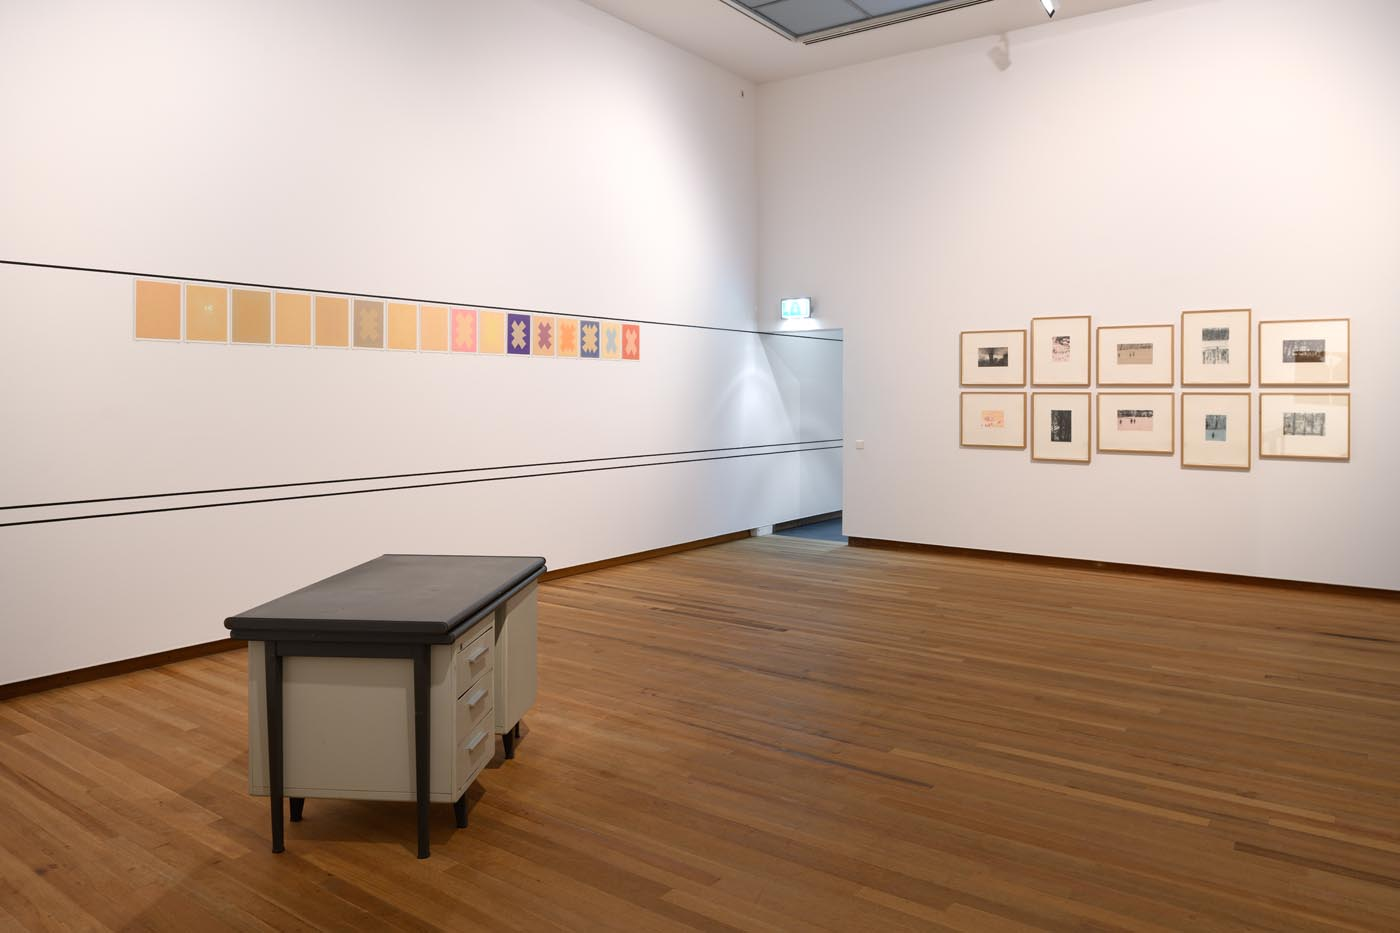 exhibition view with<i>Lessened Space</i> by gerlach en koop, and works by Ernst Caramelle and Peter Doig. Photo Peter Cox